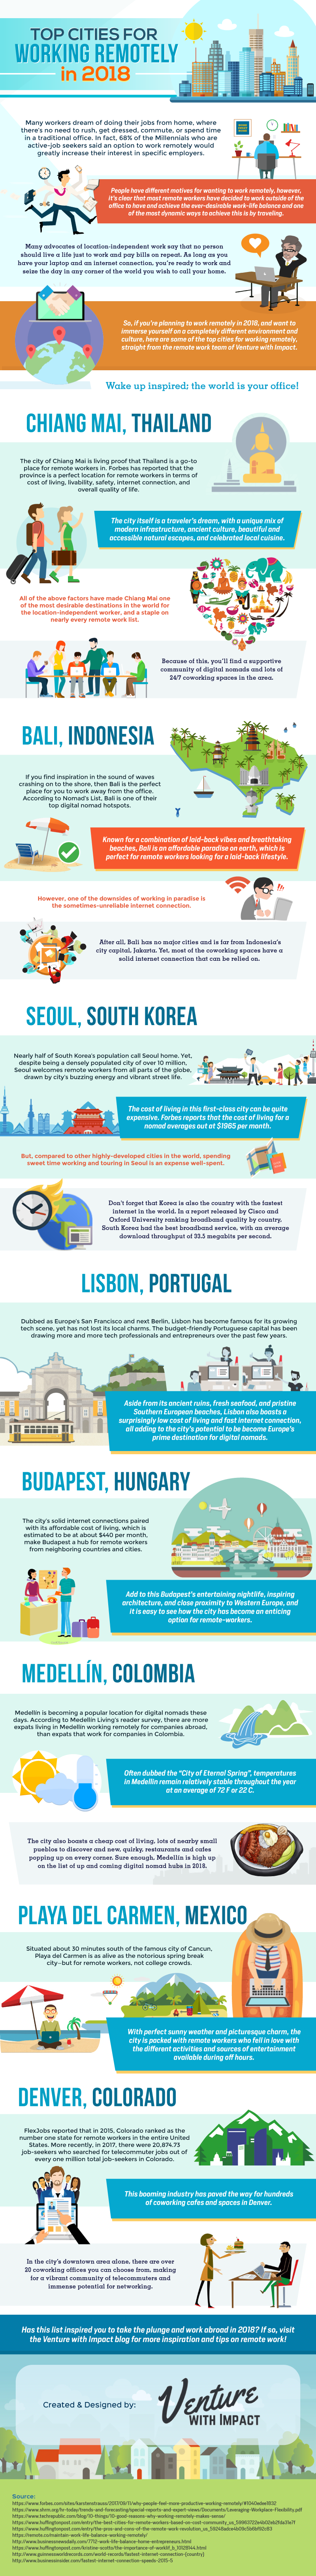 Best Places in the World for Work Remotely - Infographic